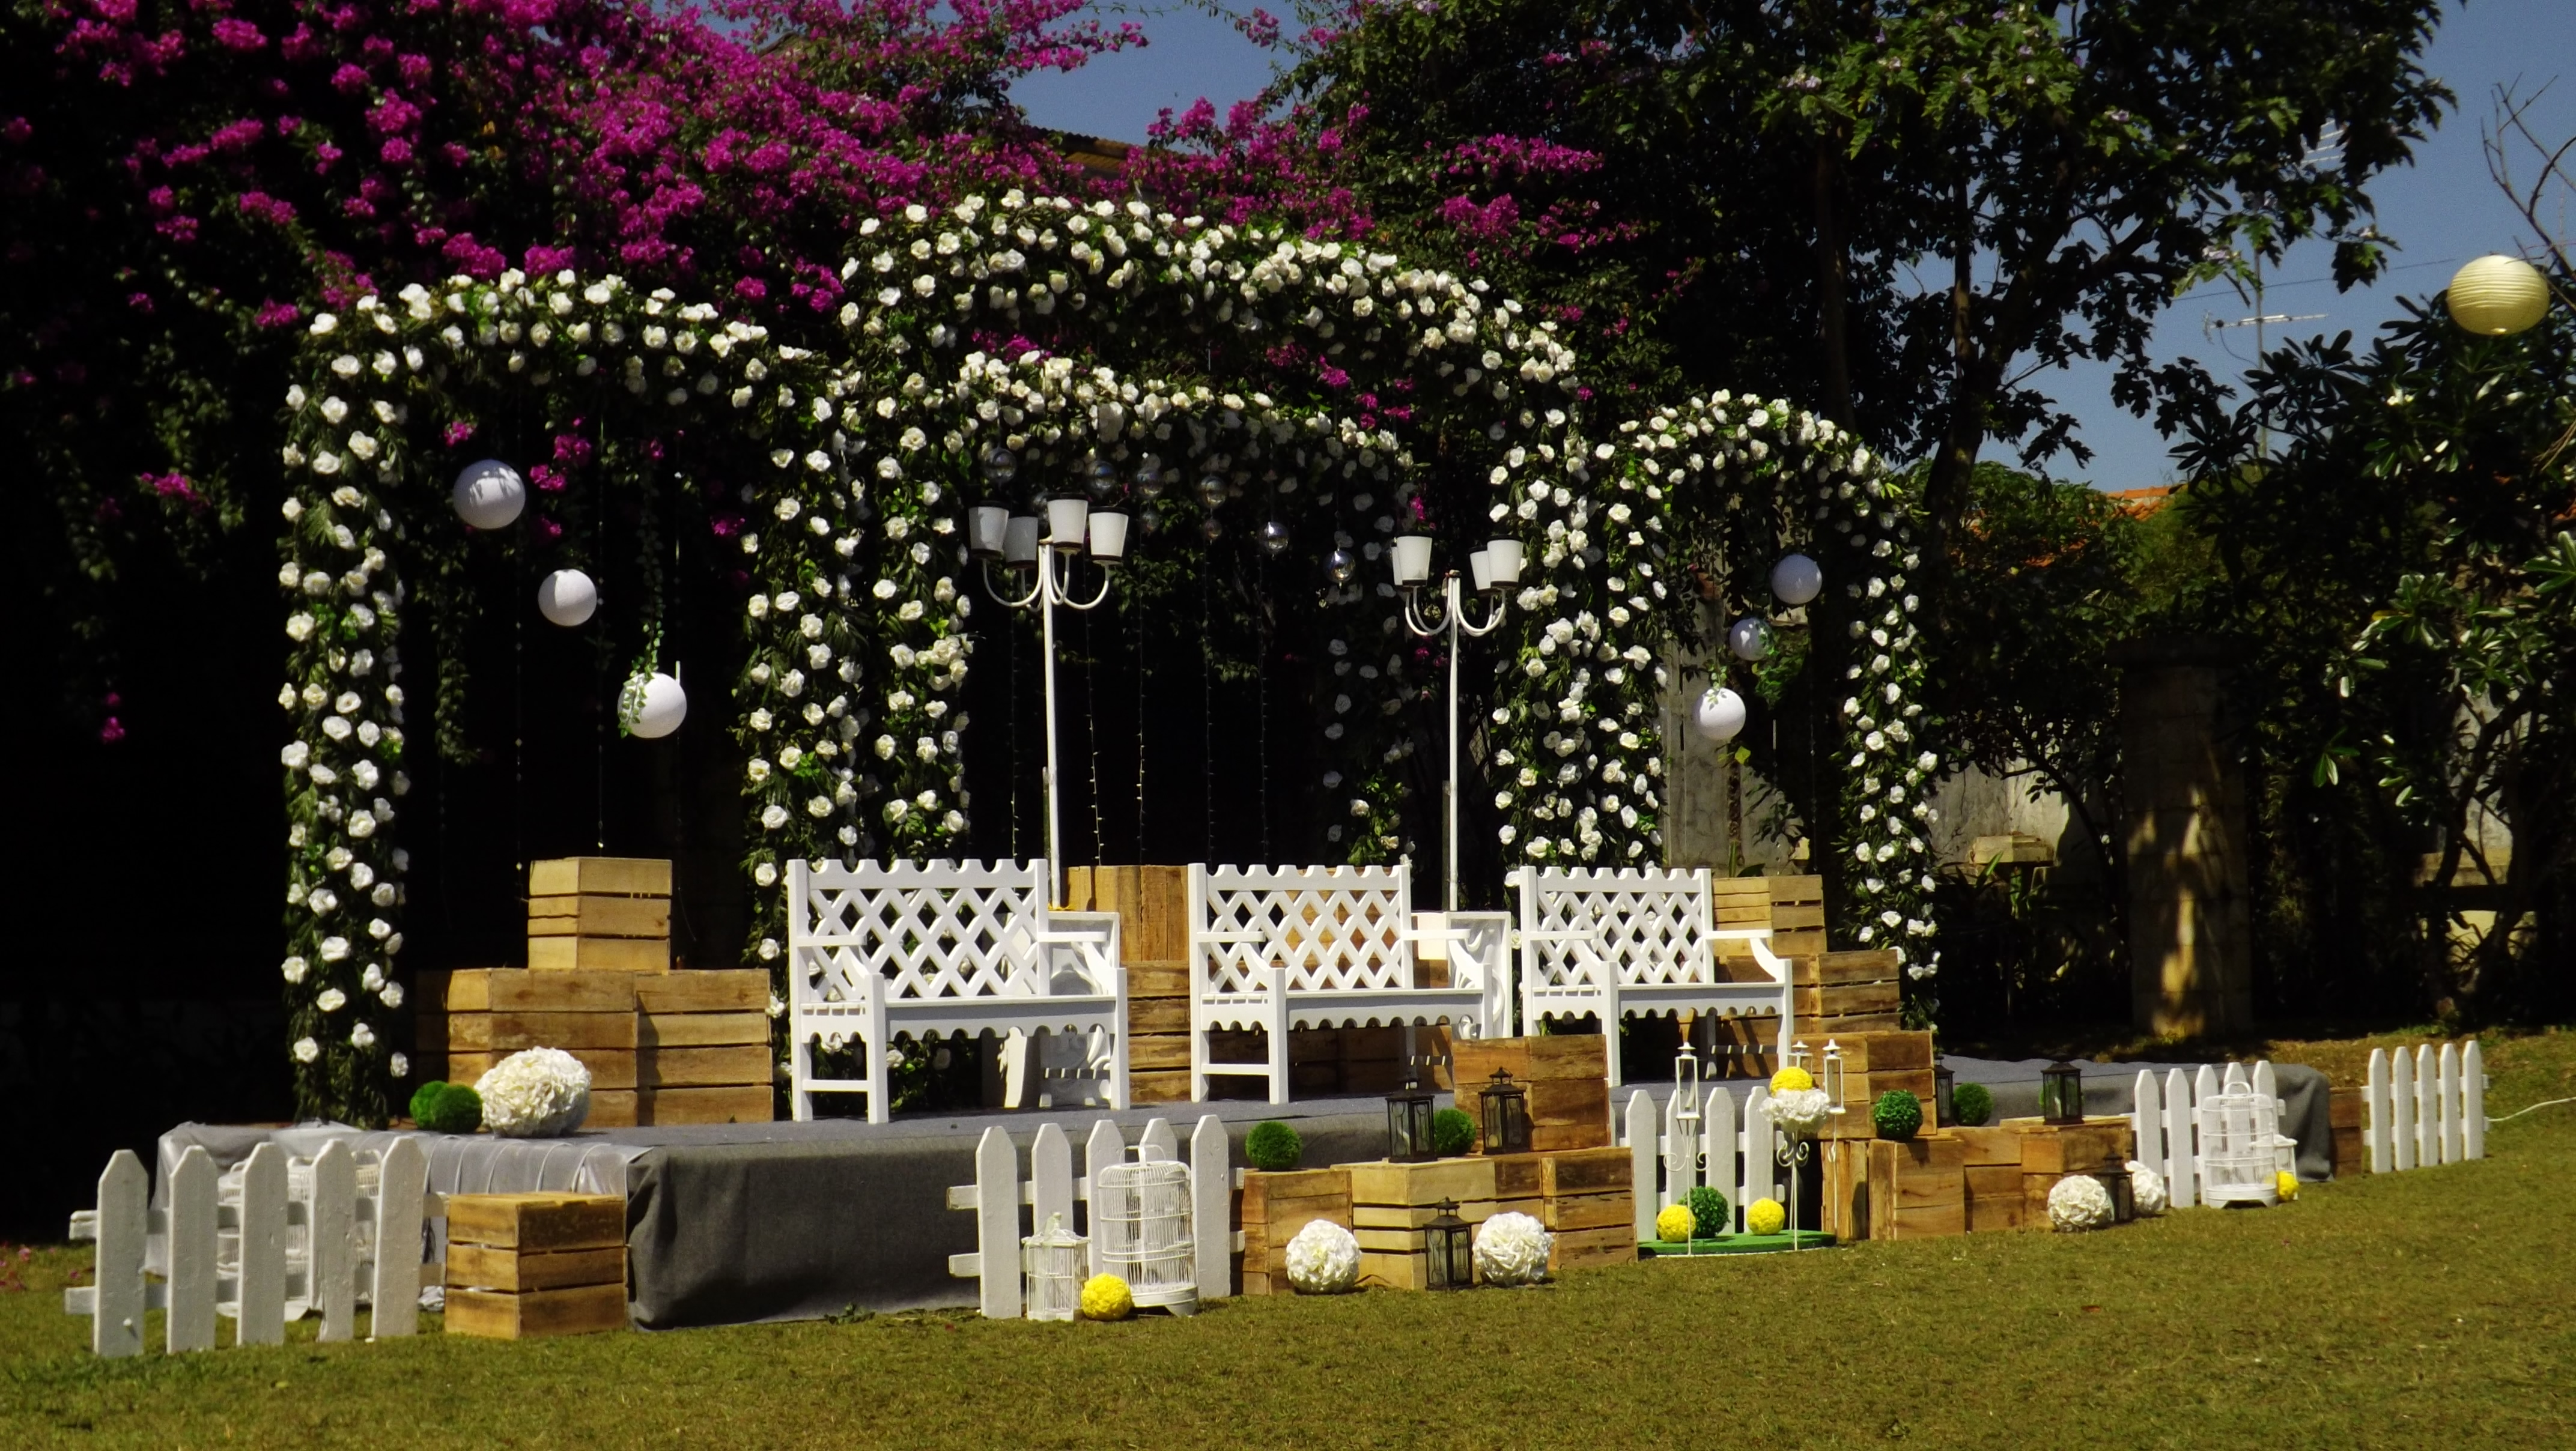 Towers garden wedding decoration by sheraton bandung hotel towers towers garden wedding decoration by sheraton bandung hotel towers bridestory junglespirit Images